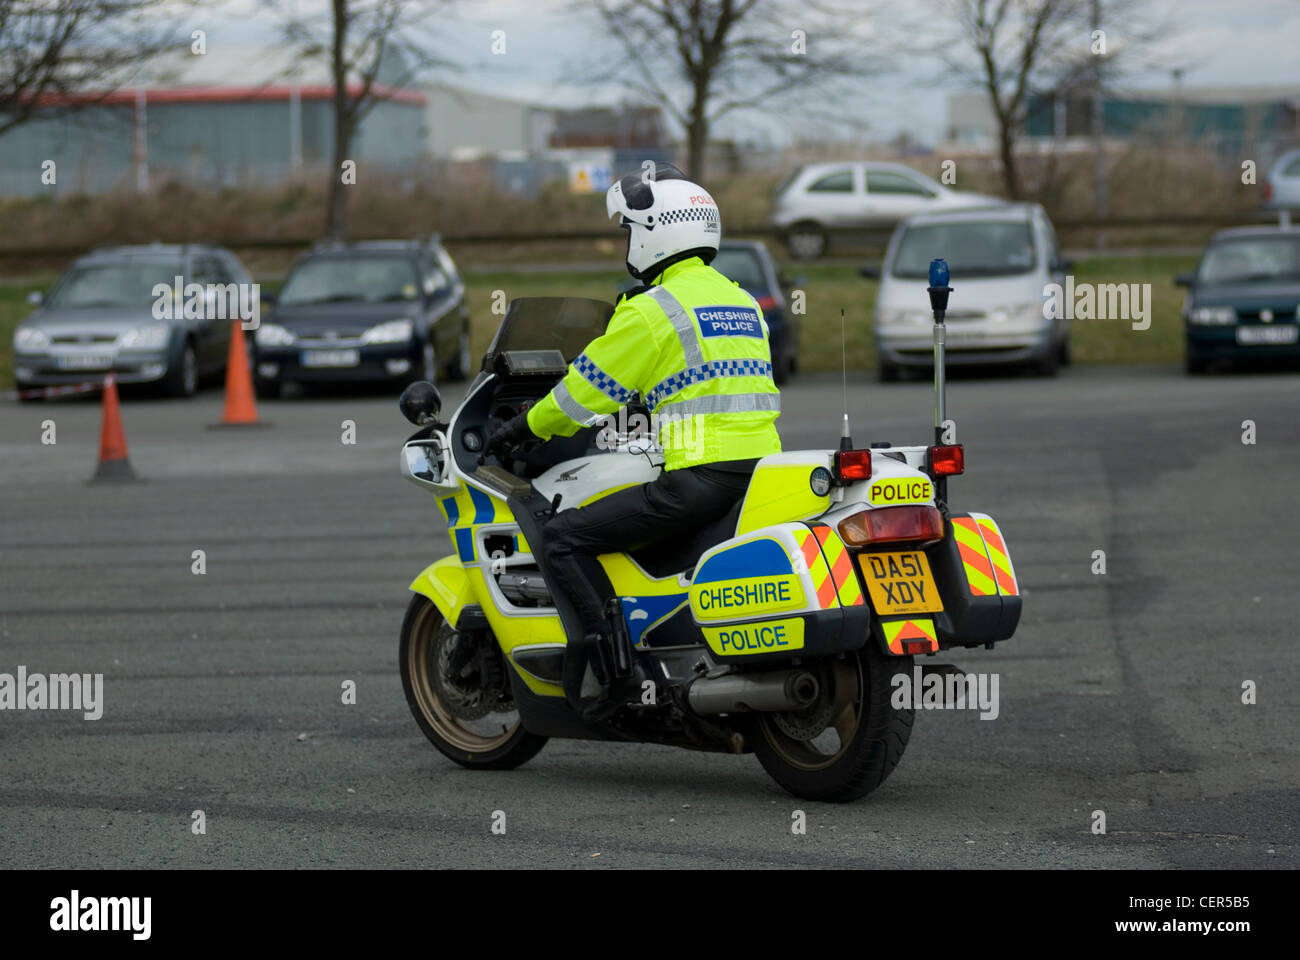 Uk motorcyle police at the scene of a civil disturbance - Stock Image